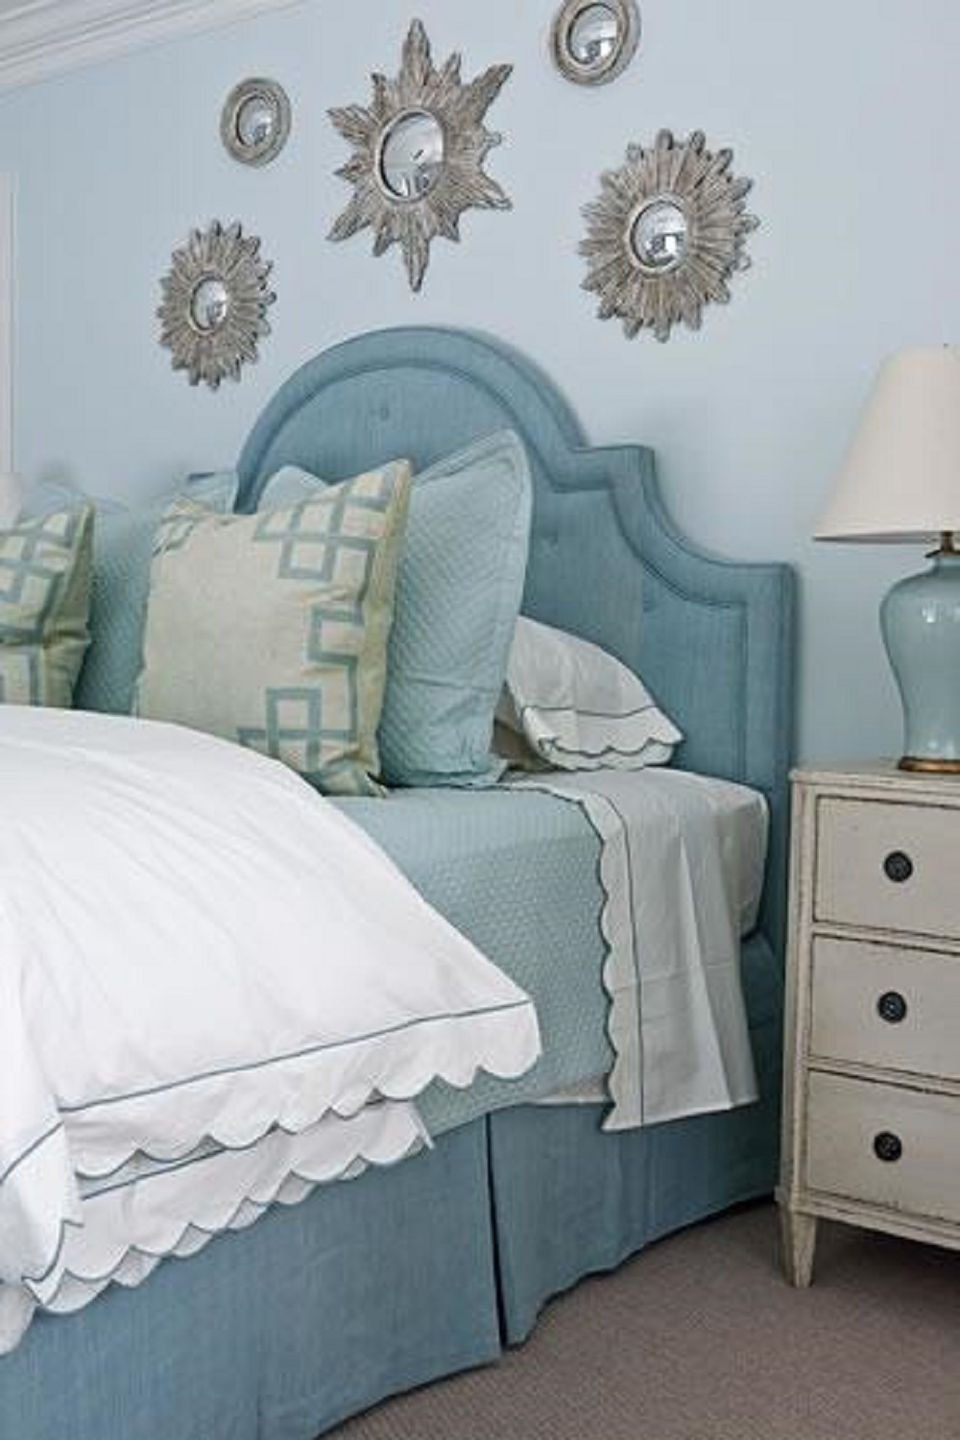 light blue bedroom. Bedroom with light blue walls  25 Stunning Blue Ideas